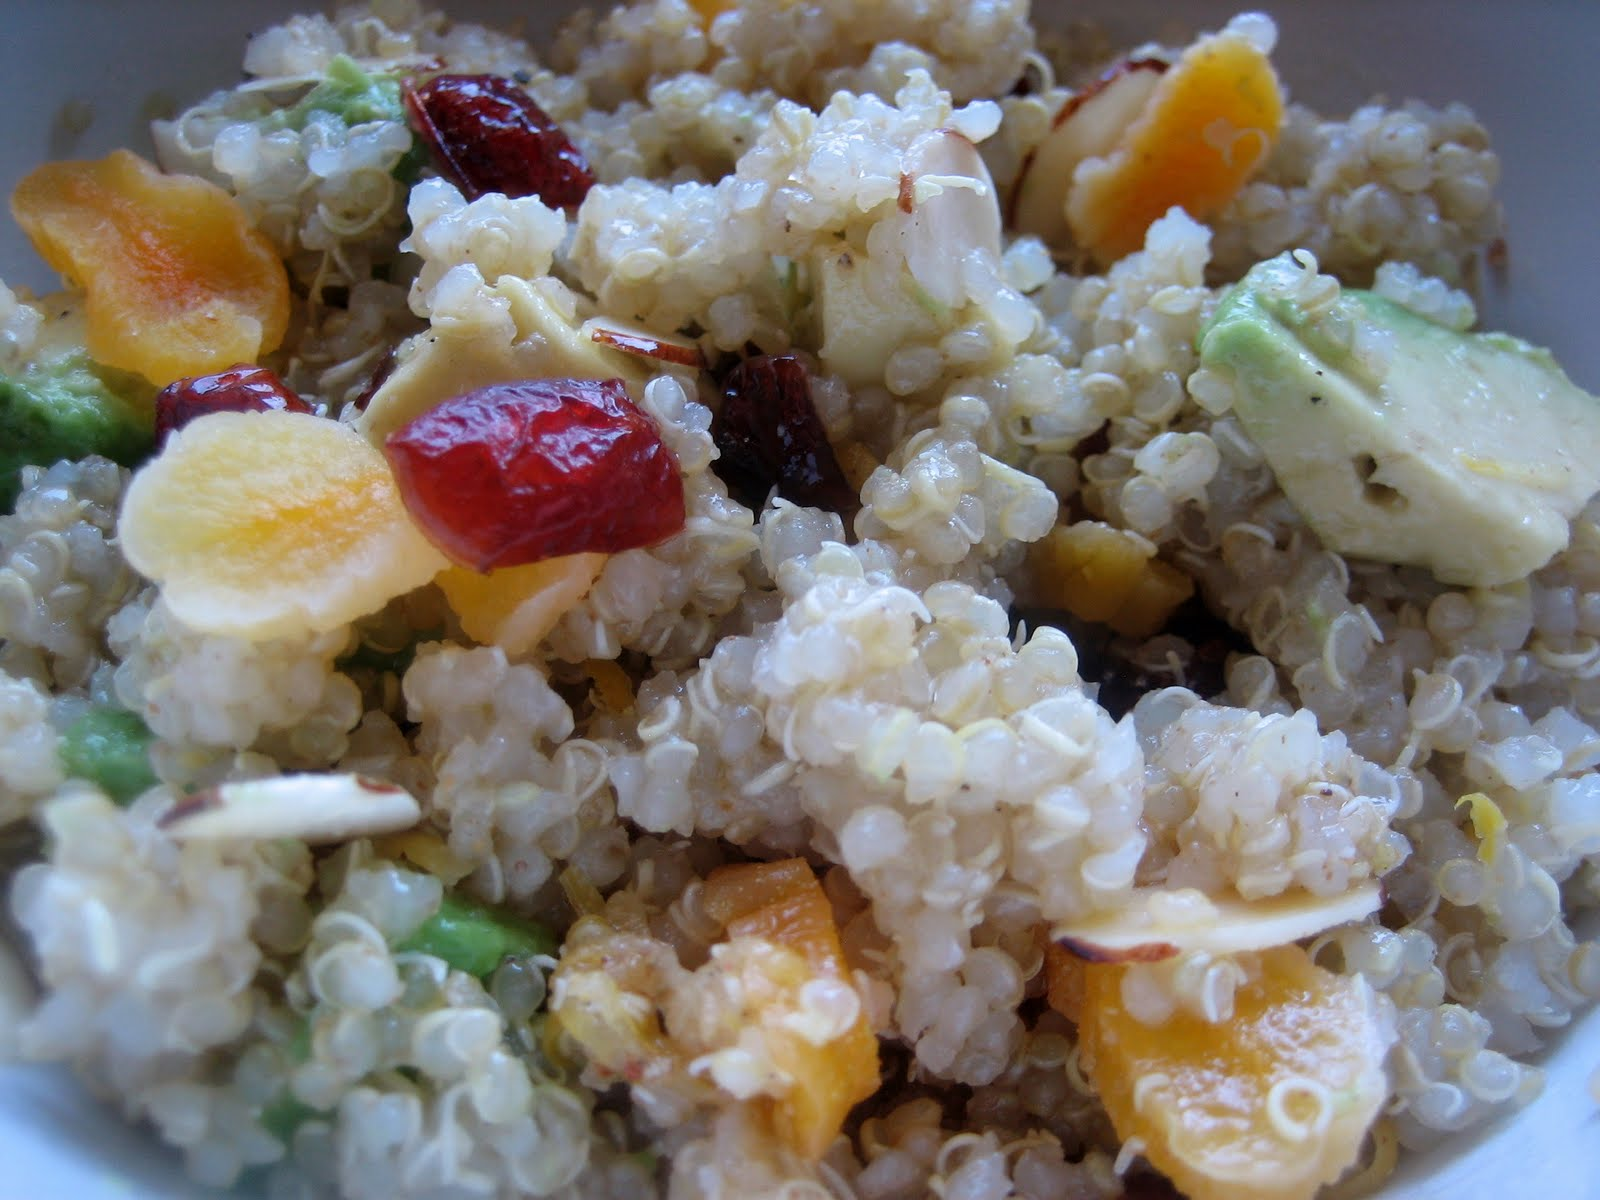 Test Kitchen: Quinoa Salad with Dried Fruit and Nuts